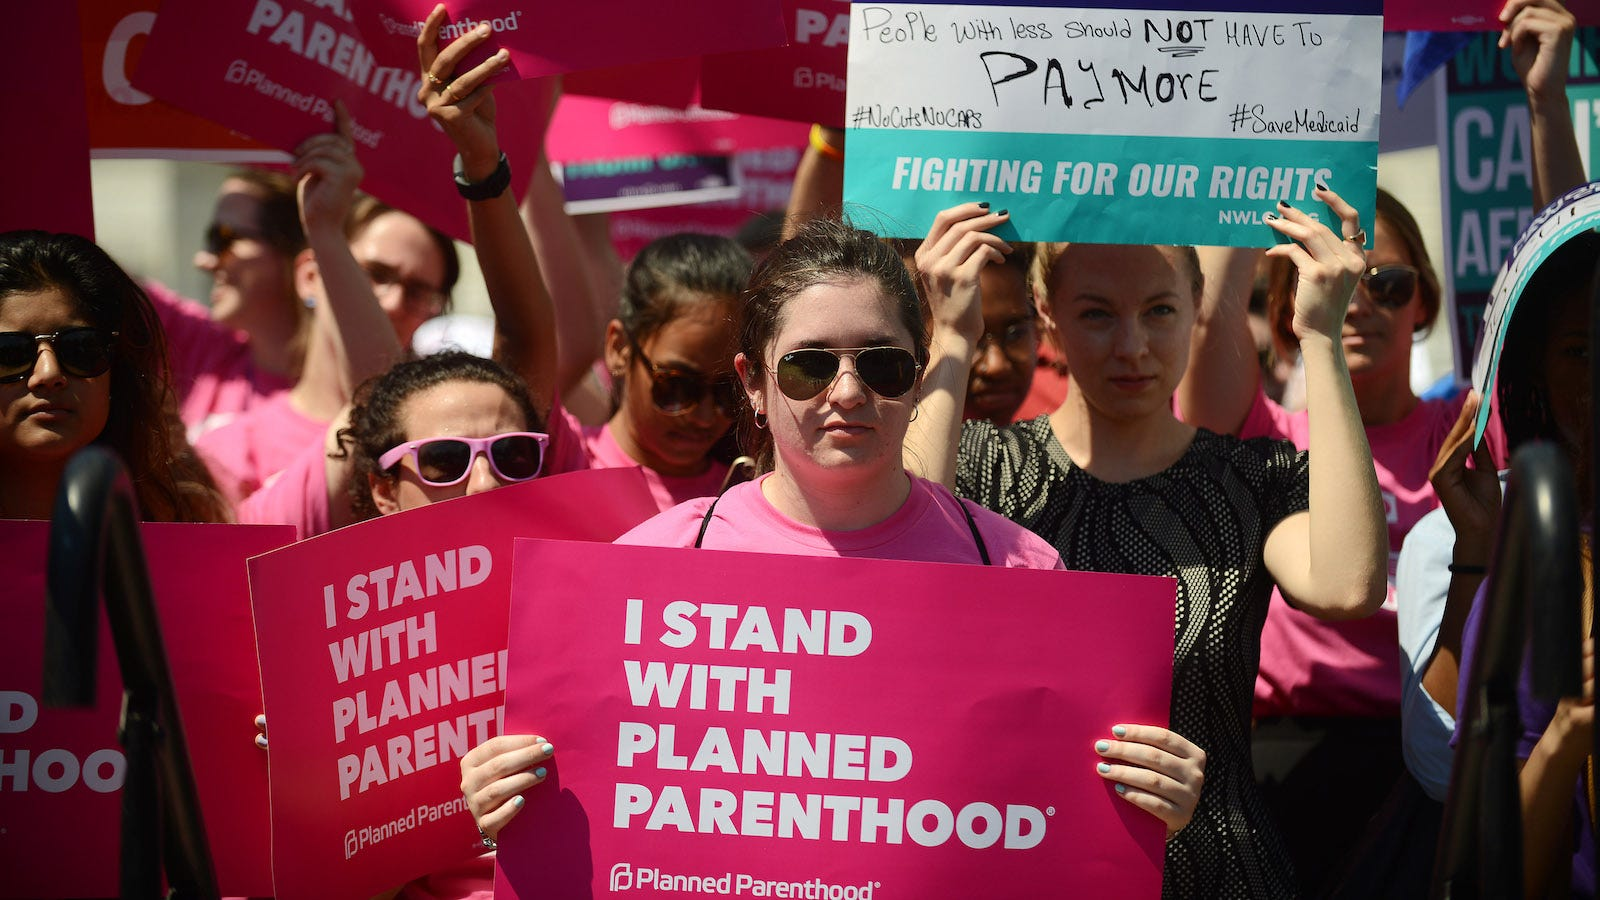 w6ozwhkwt03p3emrvnwp - Planned Parenthood Launches Effort to eliminate Anti-Abortion Policies in All 50 States